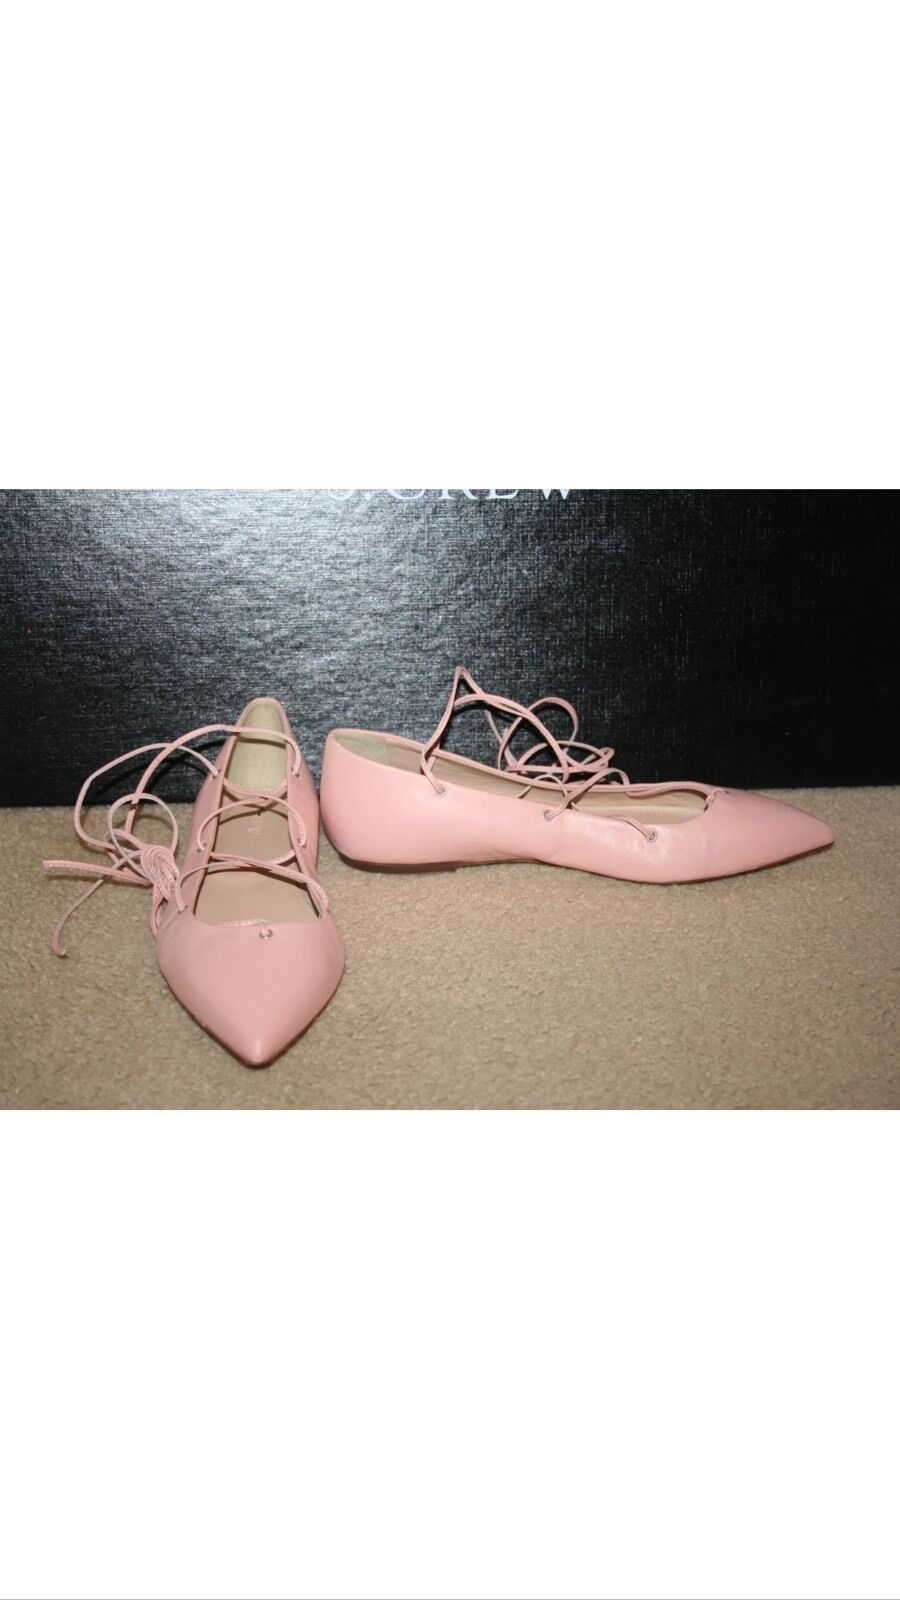 J.CREW LEATHER LACE-UP PAGODA BALLET FLATS SZ 6 PAGODA LACE-UP PEACH F0281 c912b2